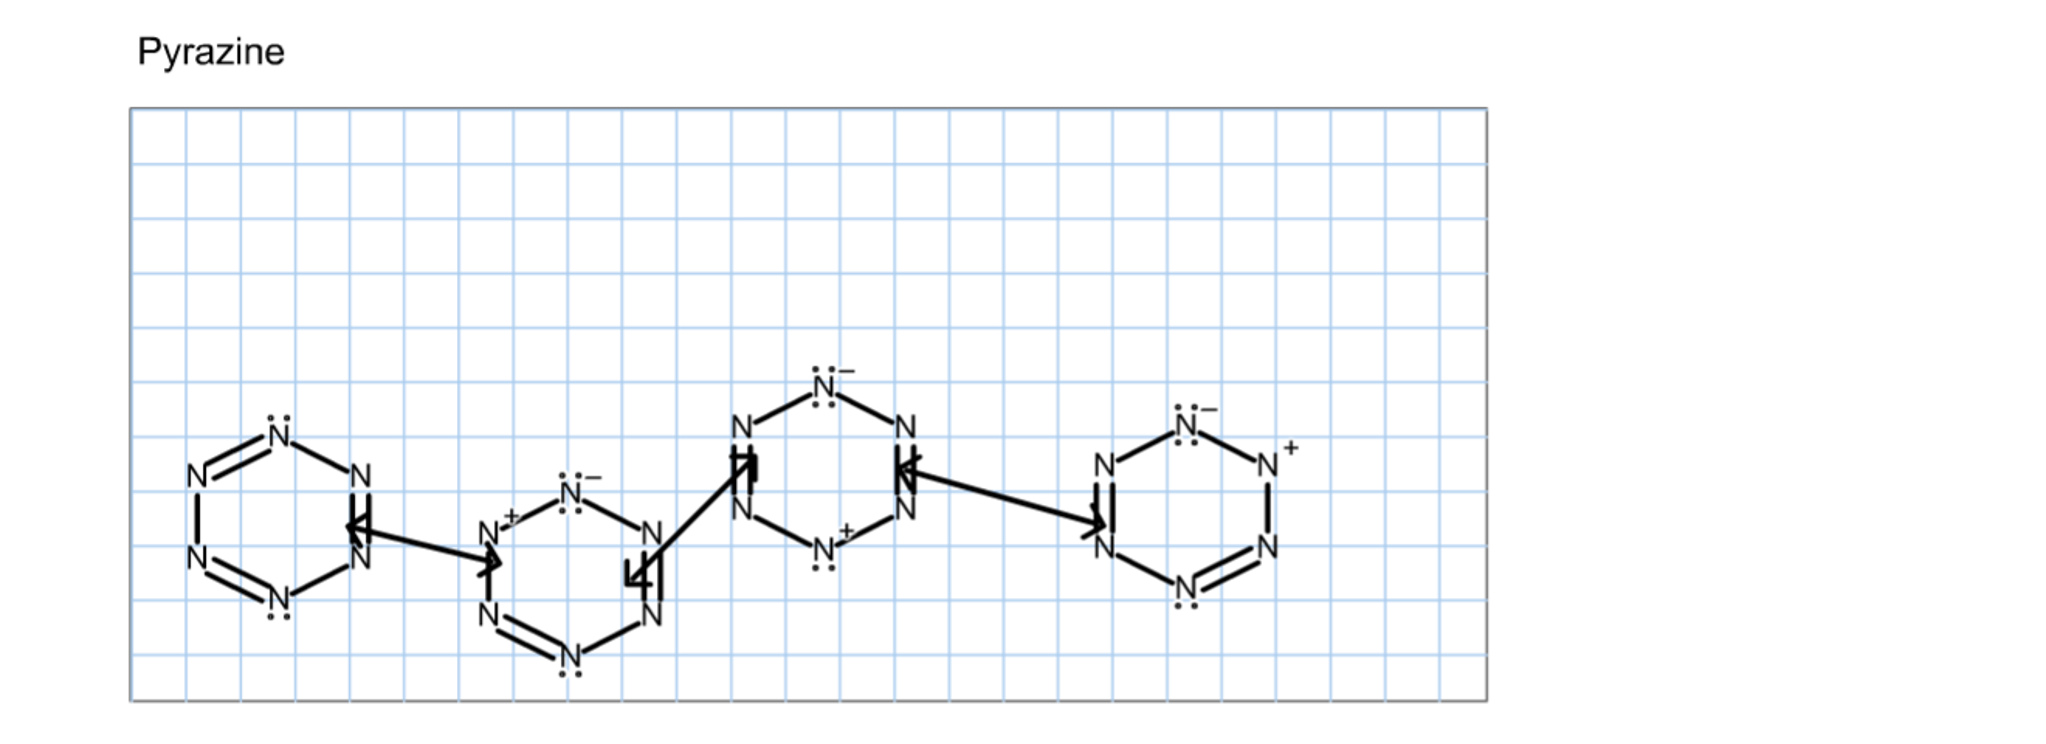 Solved Pyridine And Pyrazine Have Structures Similar To B